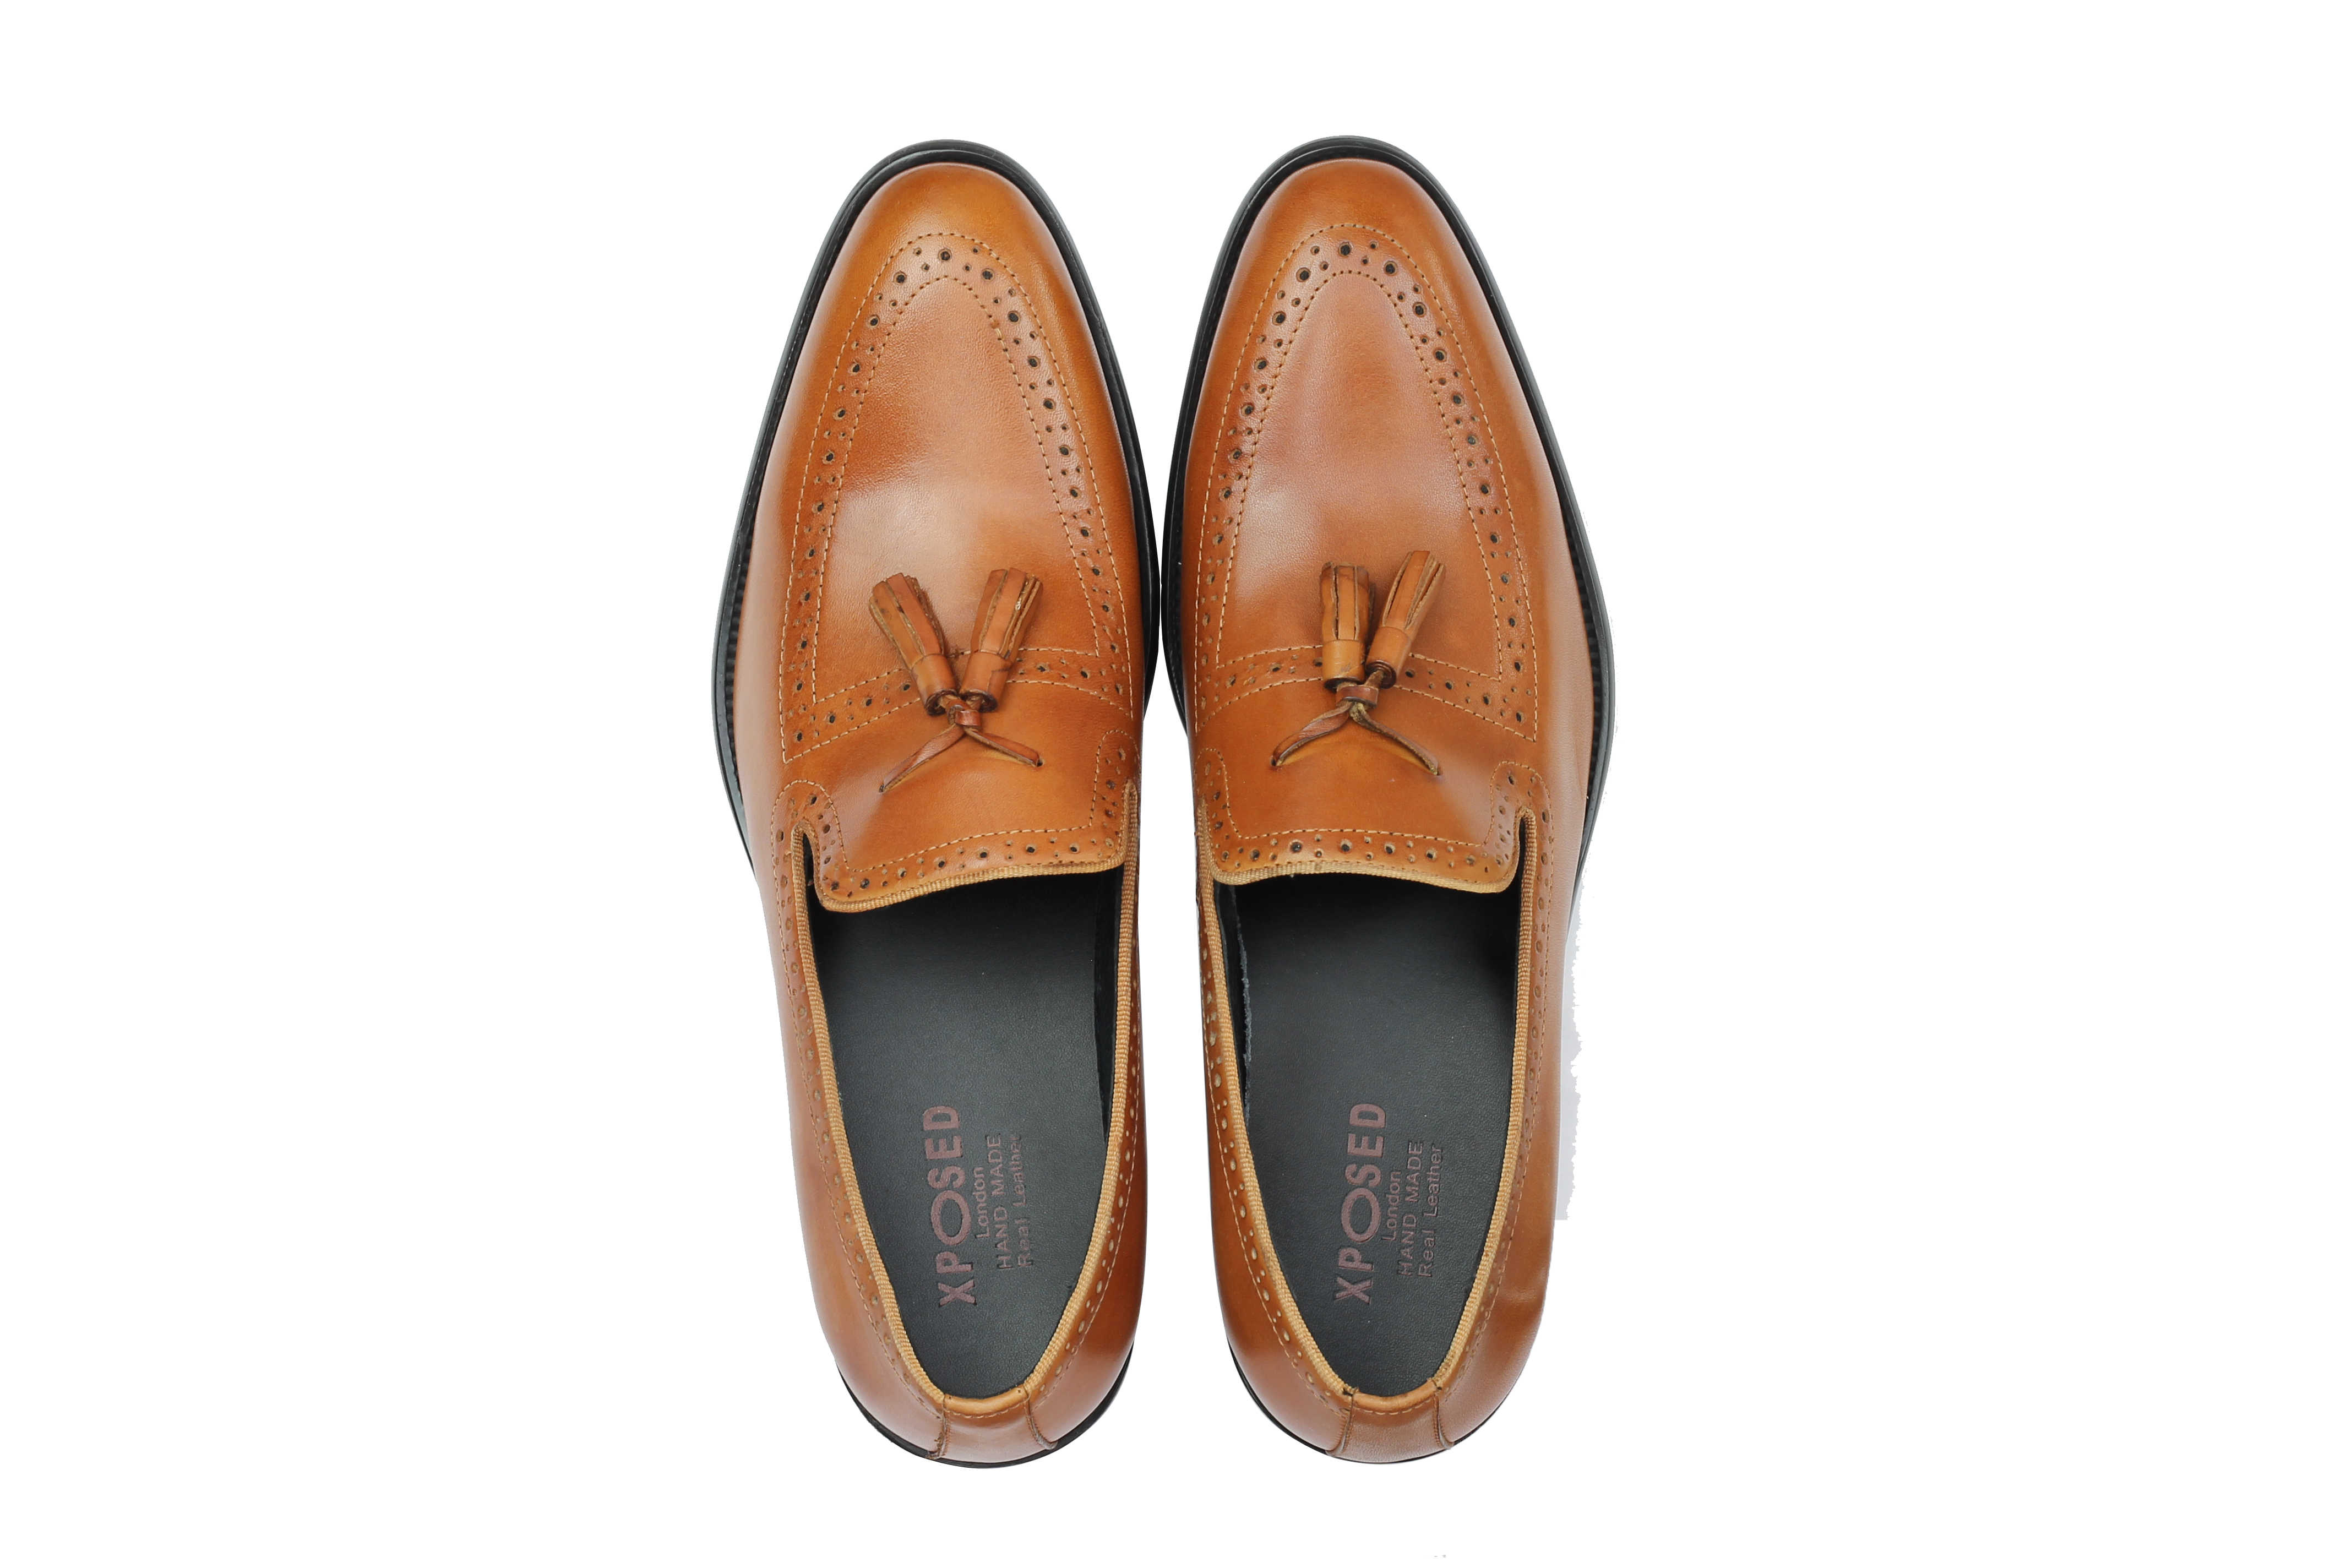 Mens-Real-Leather-Tassel-Loafers-Retro-Hand-Made-Brogue-Slip-on-Dress-Shoes thumbnail 18